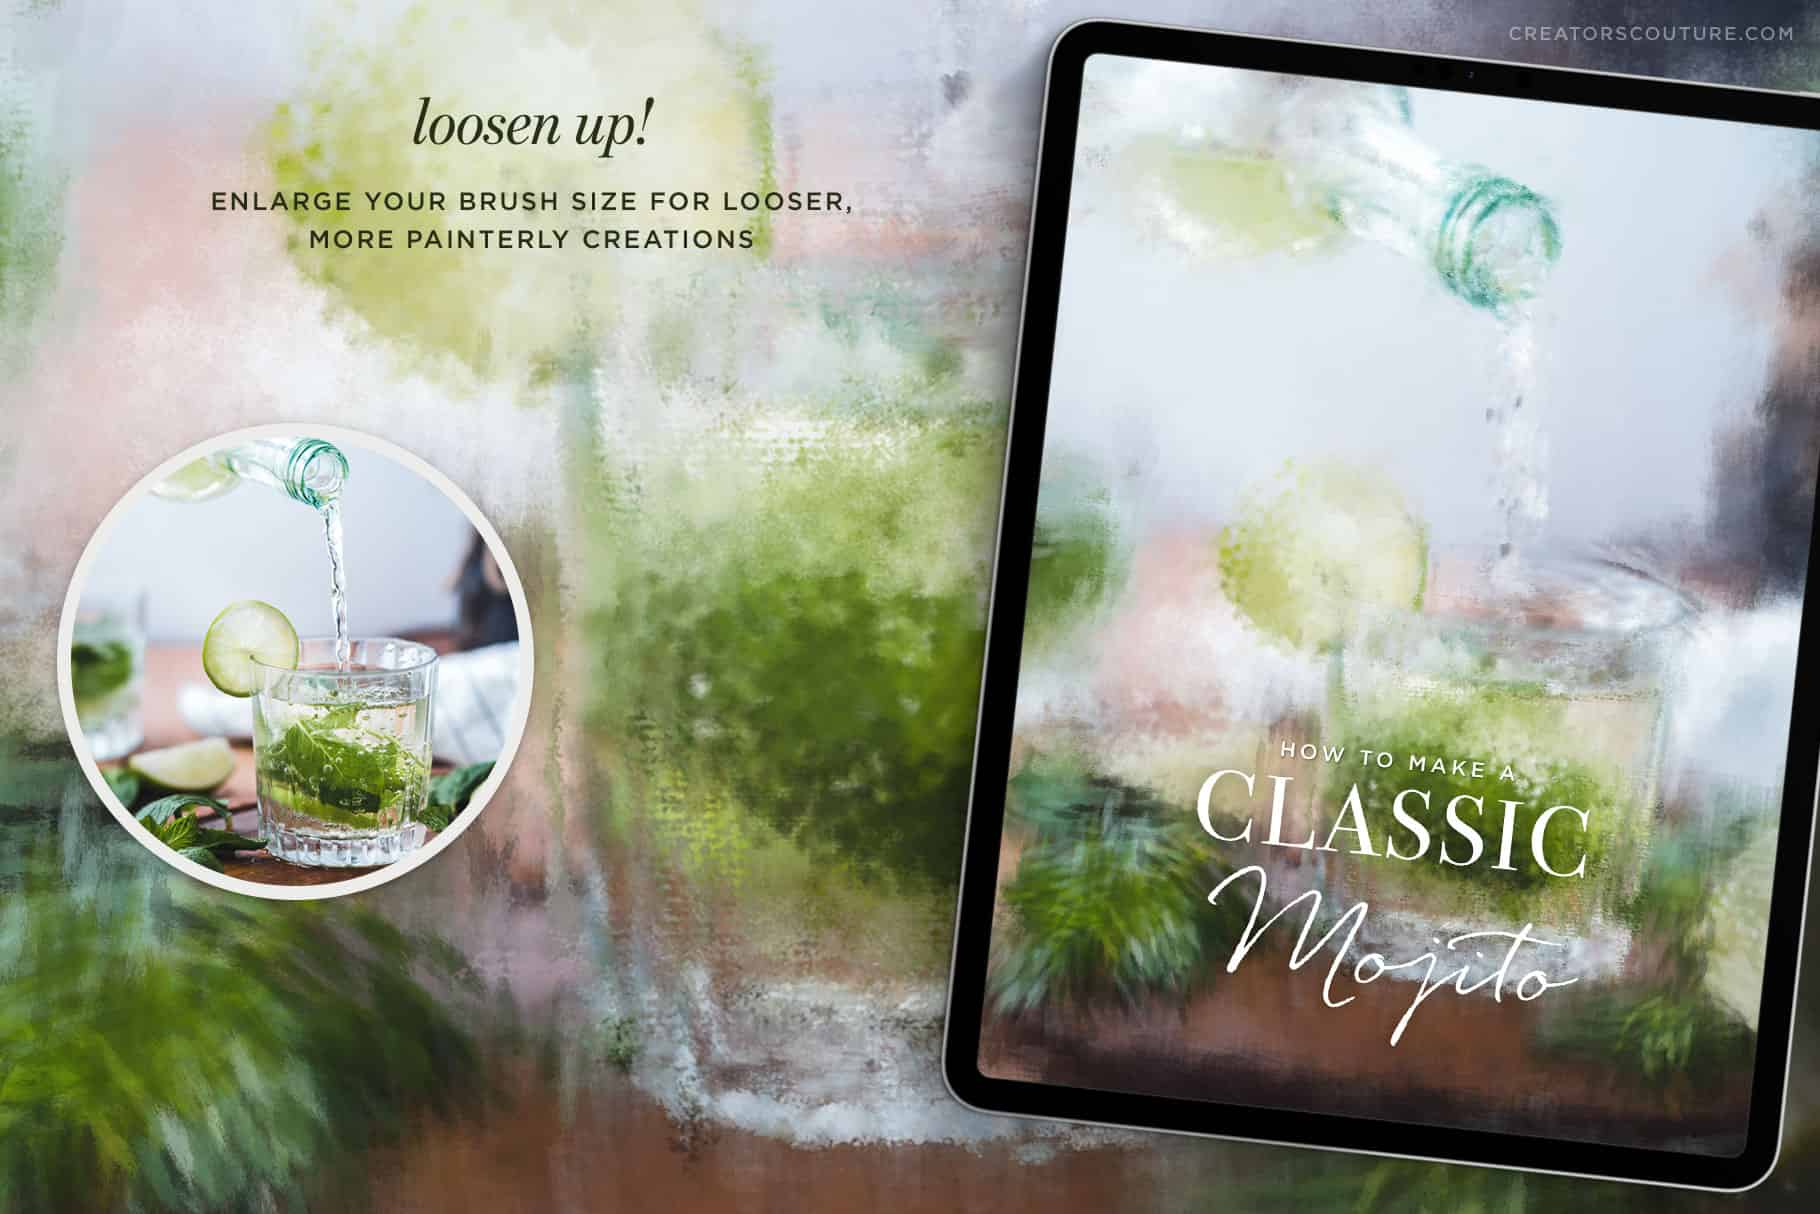 "A Photoshopped picture of a mojito being made is overlaid by the original, unedited image, and an iPad which showcases the cover of a magazine featuring the same image beneath the words ""How to Make a Classic Mojito."" A small paragraph also reads, ""Loosen up! Enlarge your brush size for looser, more painterly creations."""